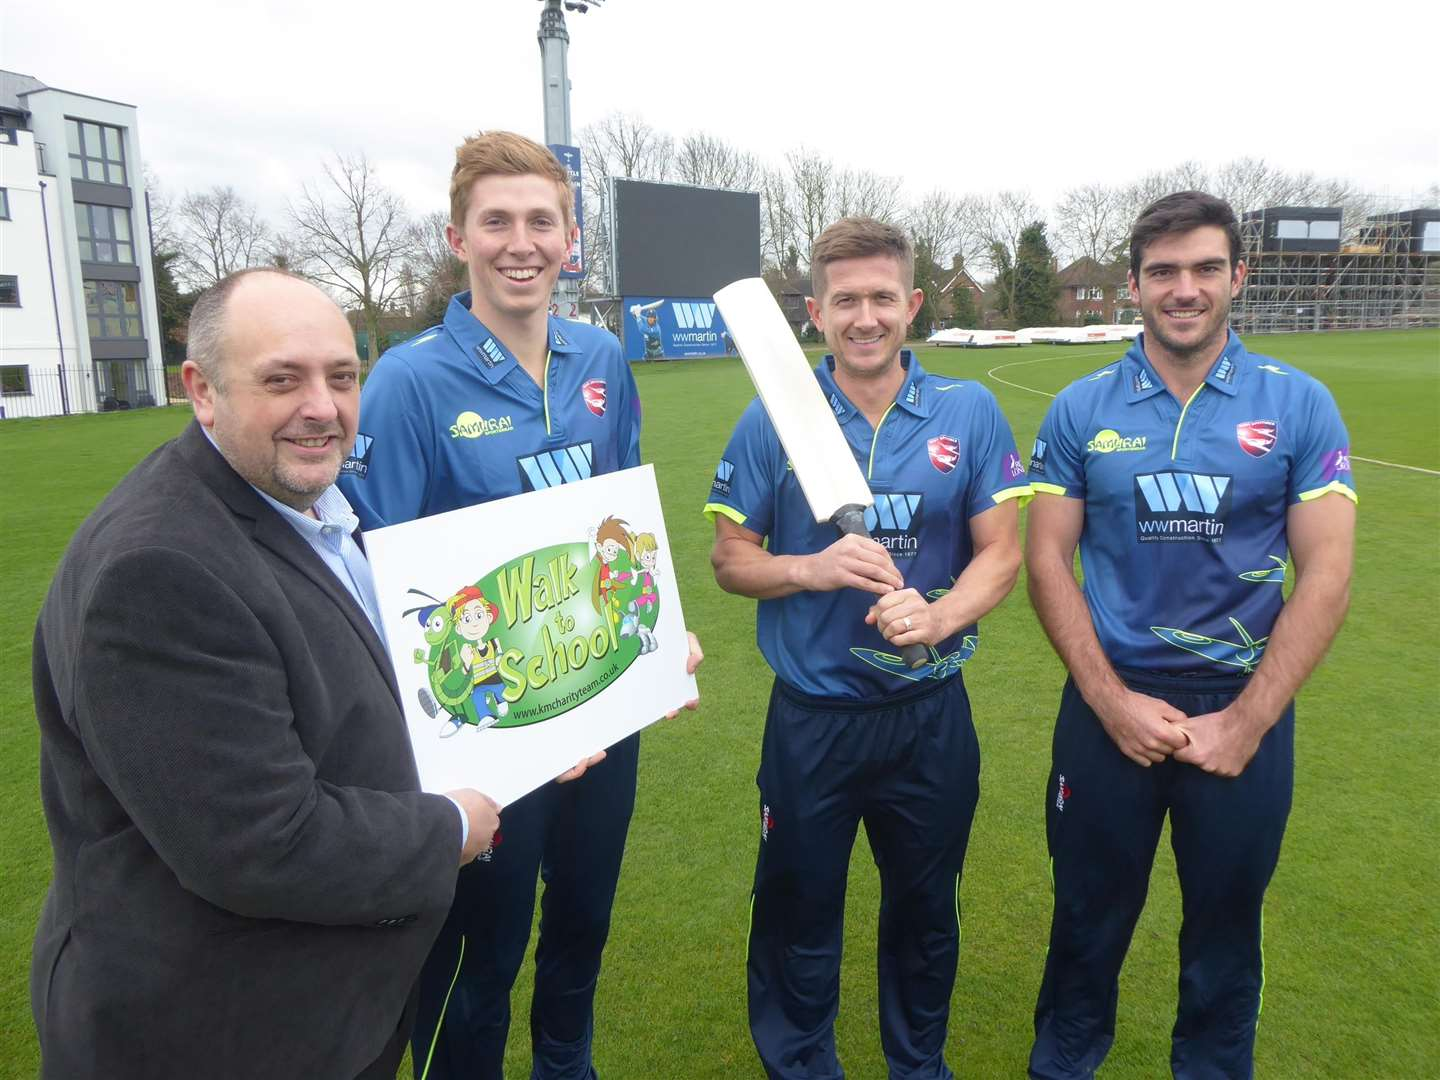 Neil Peck, director of WW Martin, joins Kent cricketers Zak Crawley, Joe Denly and Grant Stewart to promote the walk to school campaign. (1500363)